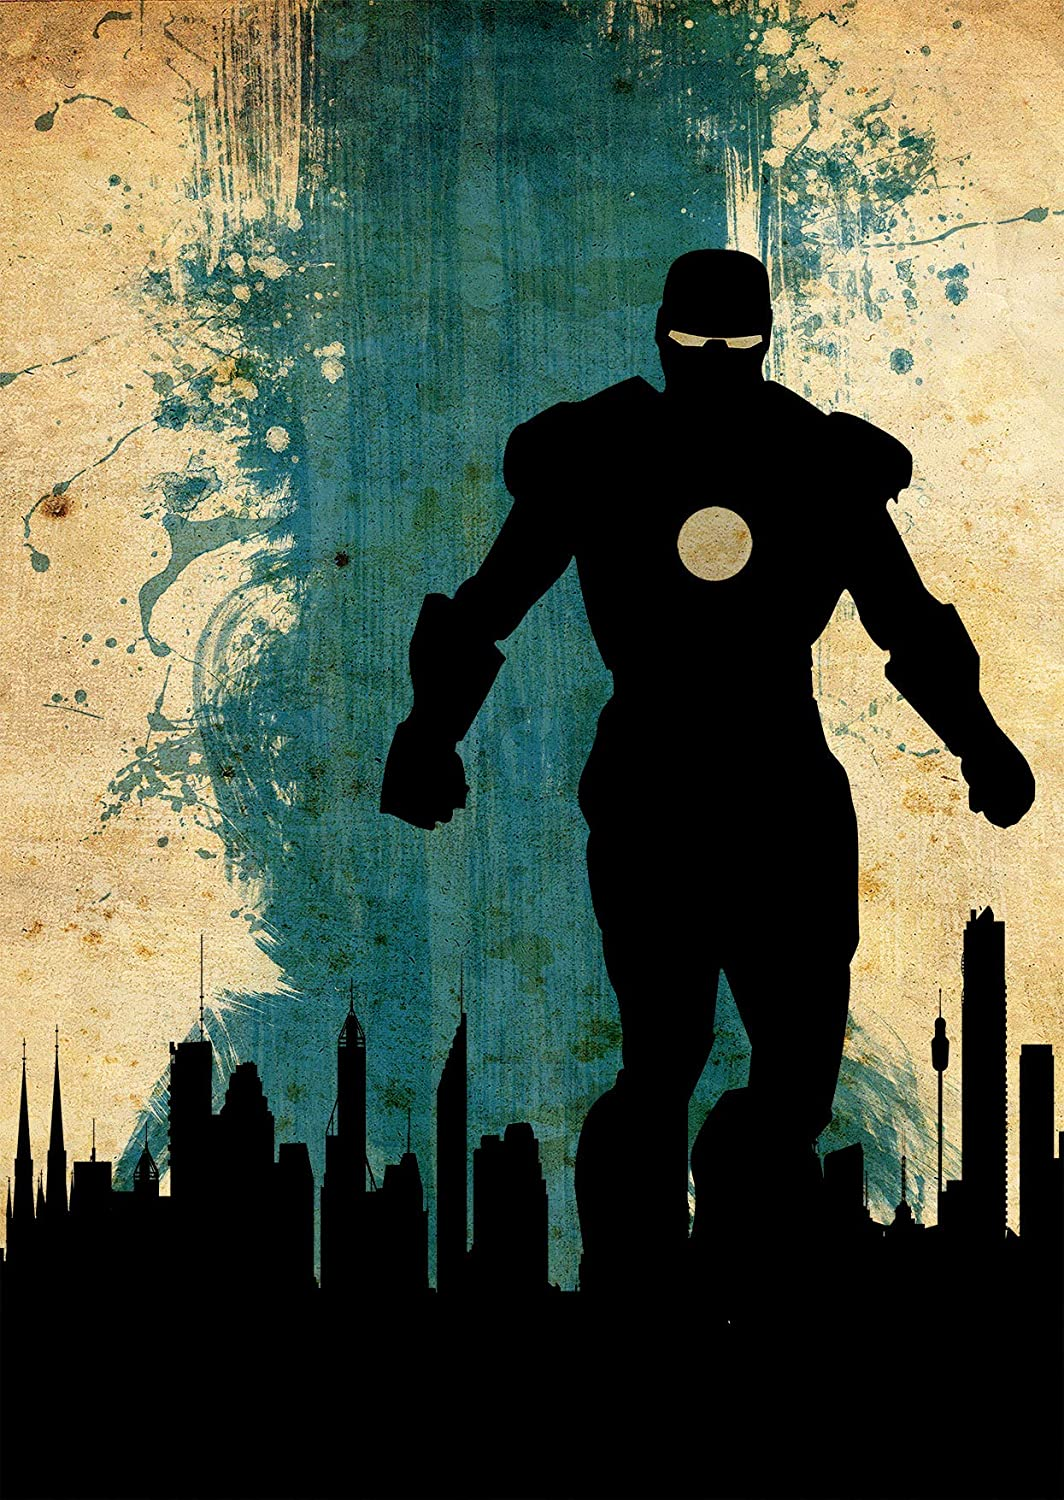 The Avengers Iron Man Minimalist Watercolor Vintage Poster Avengers Collectibles Print Tony Stark Robert Downey Jr. JARVIS Gwyneth Paltrow Artwork Home Decor Wall Hanging Cool Gift